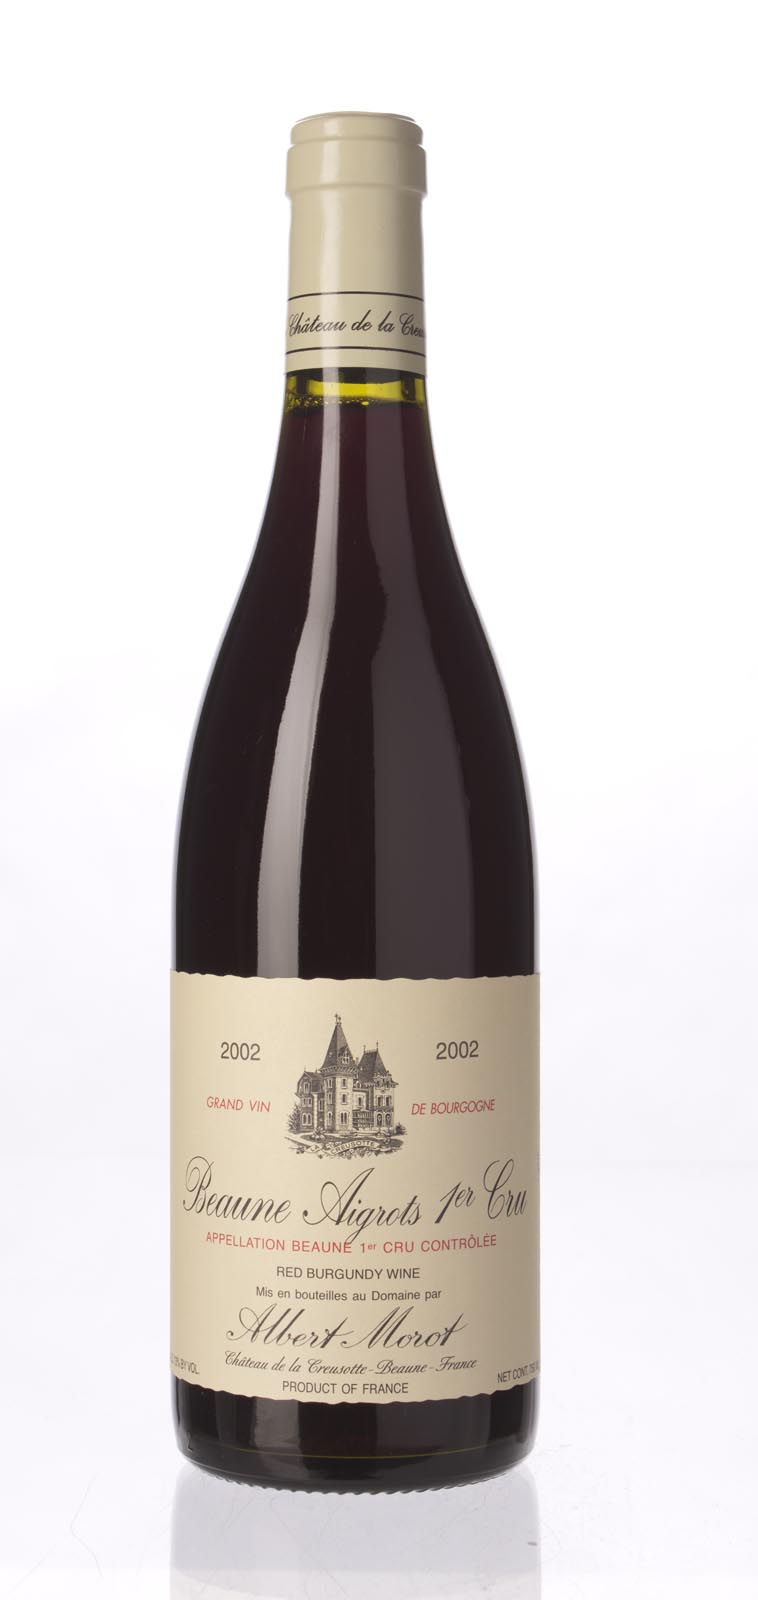 Albert Morot Beaune Aigrots 2002, 750mL () from The BPW - Merchants of rare and fine wines.